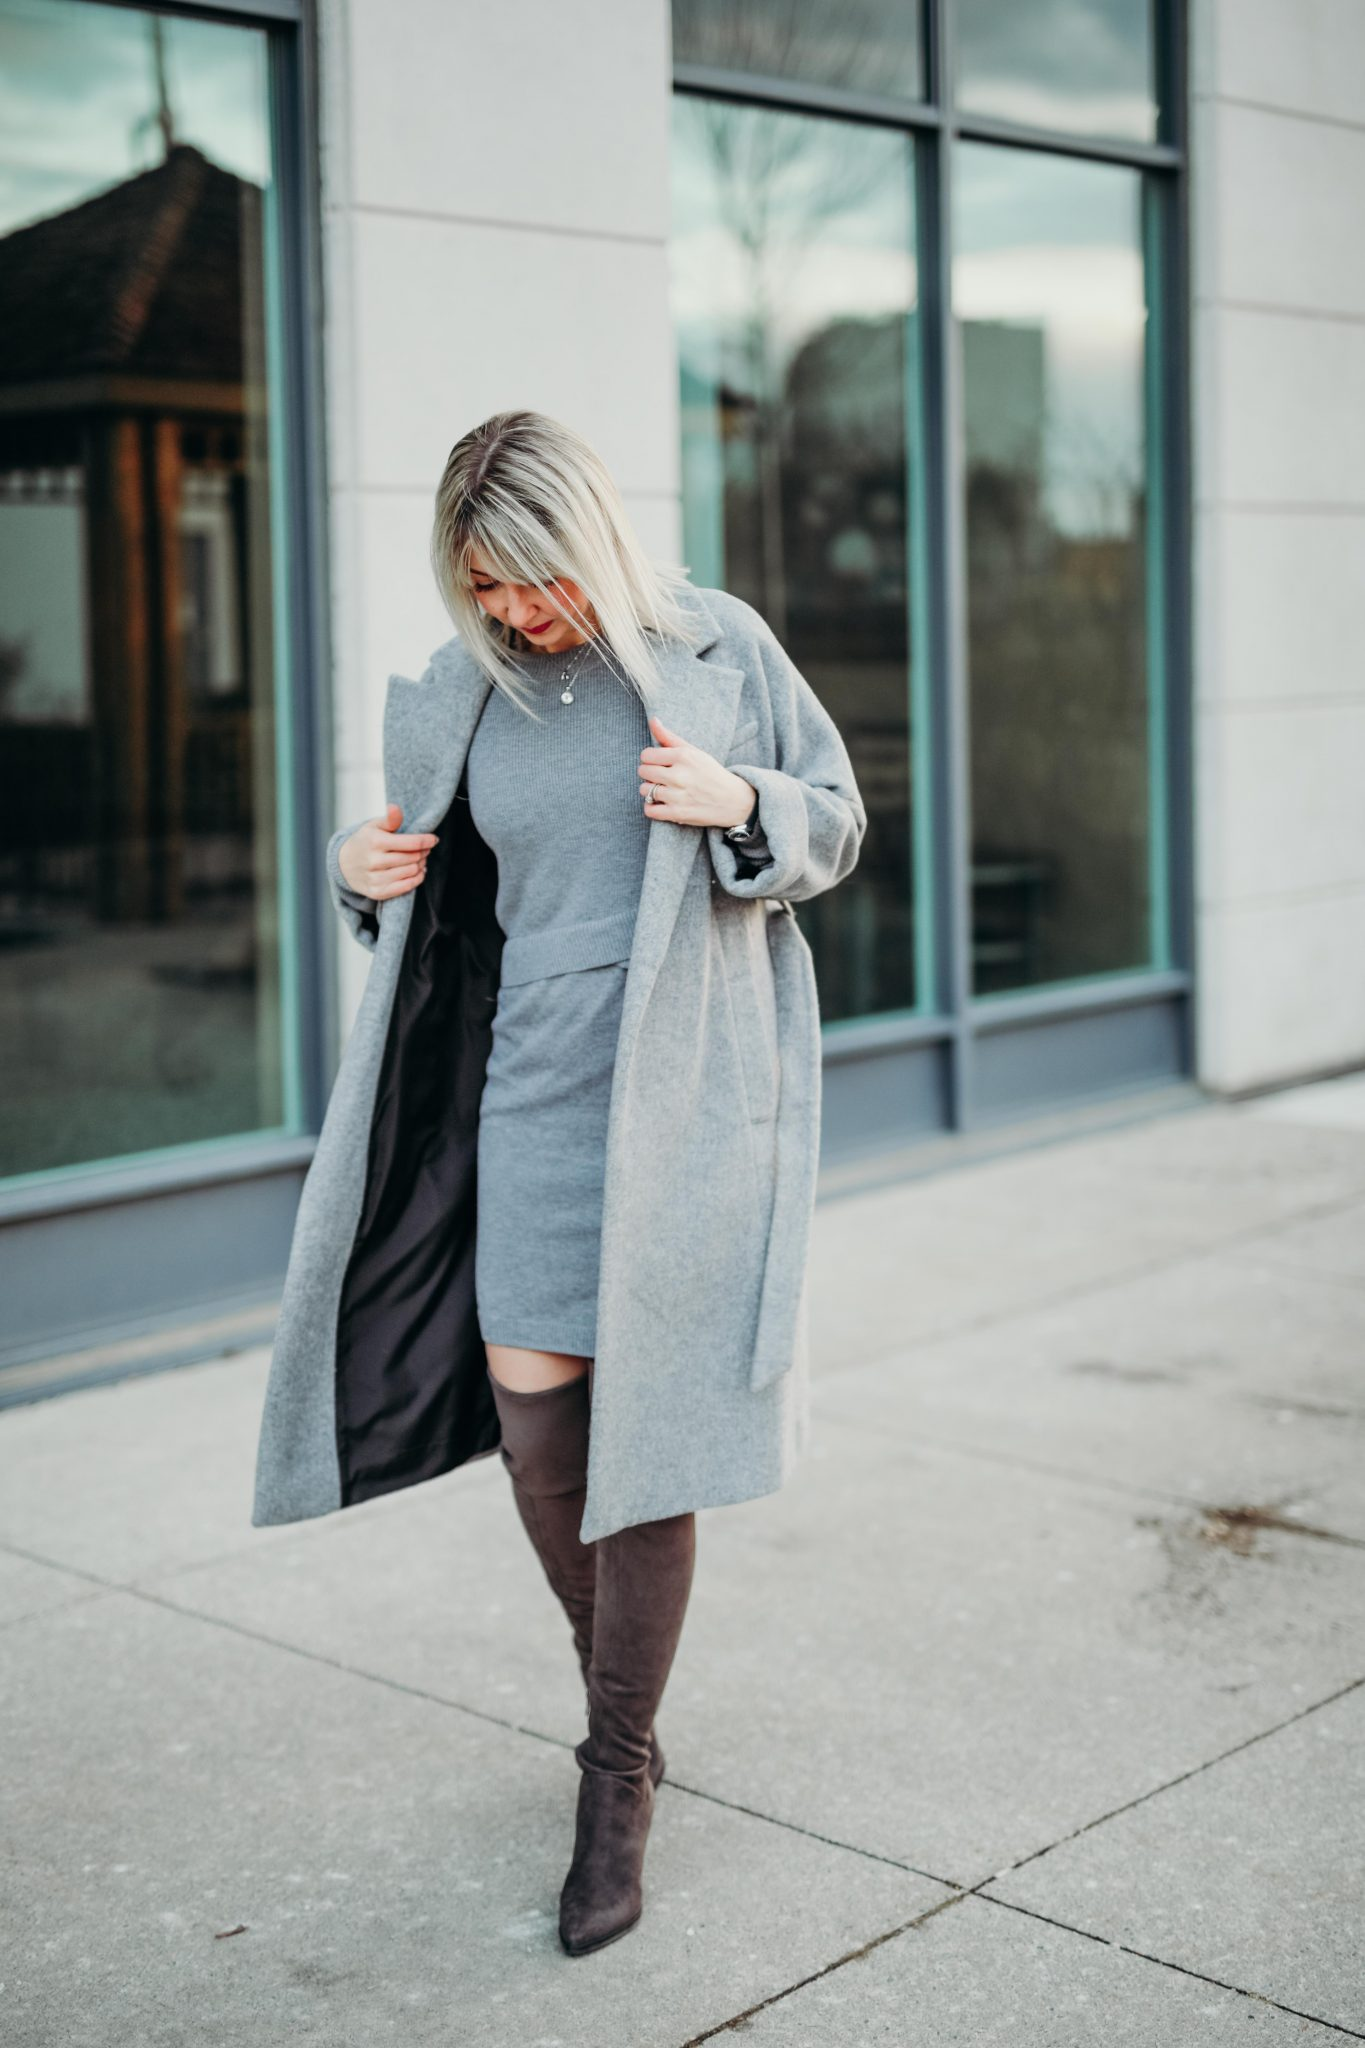 grey knit dress & long coat (5 of 10)